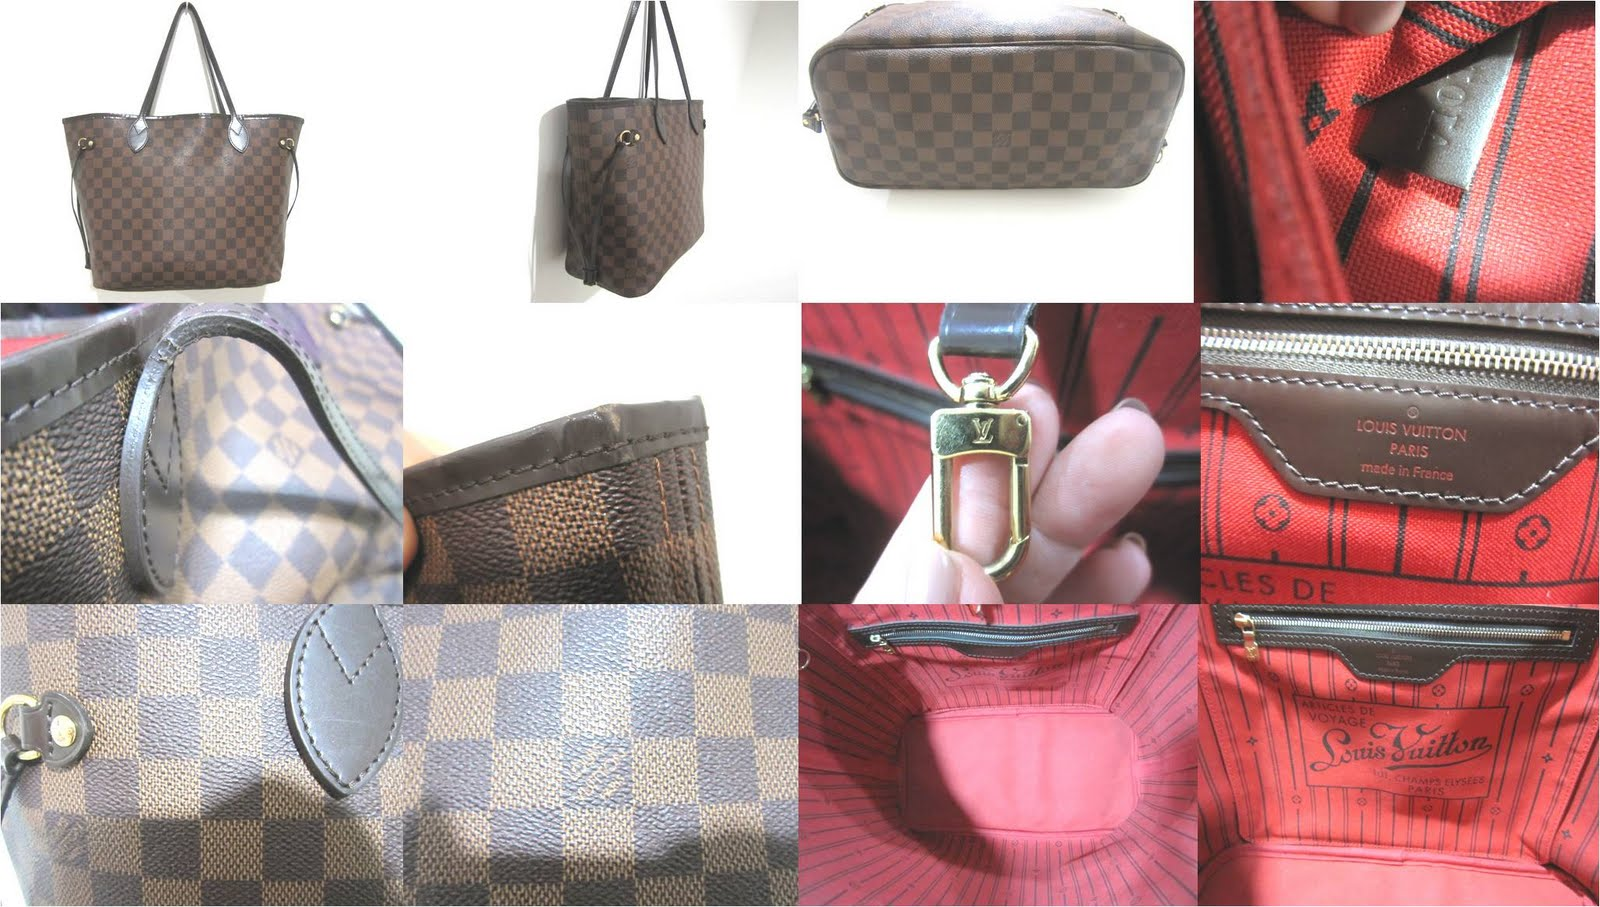 The Bags Affairs ~ Satisfy your lust for designer bags